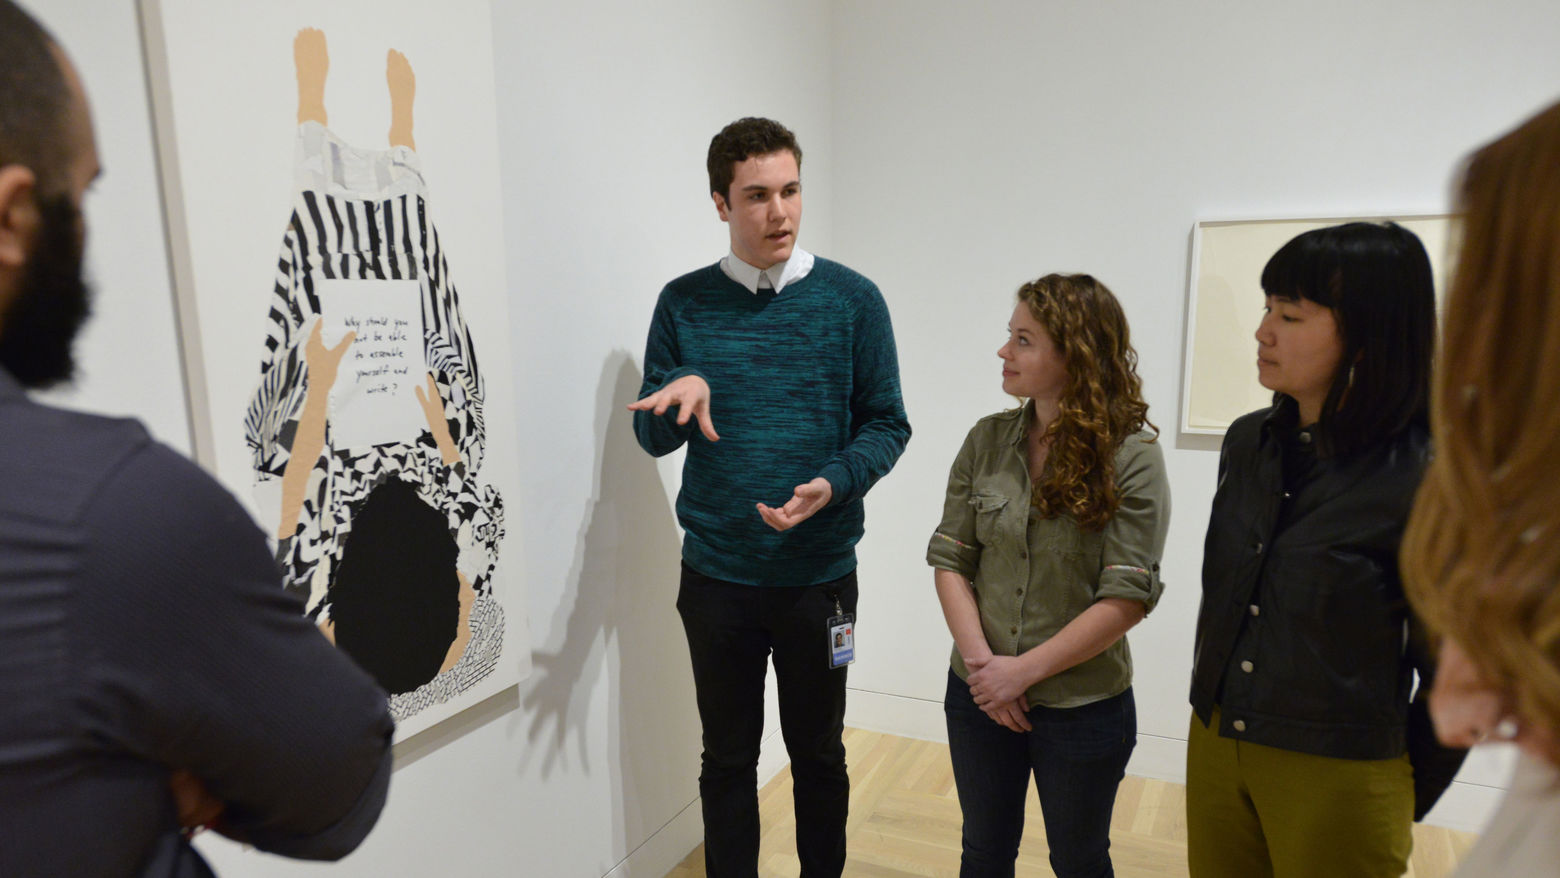 Student educators teaching in the gallery